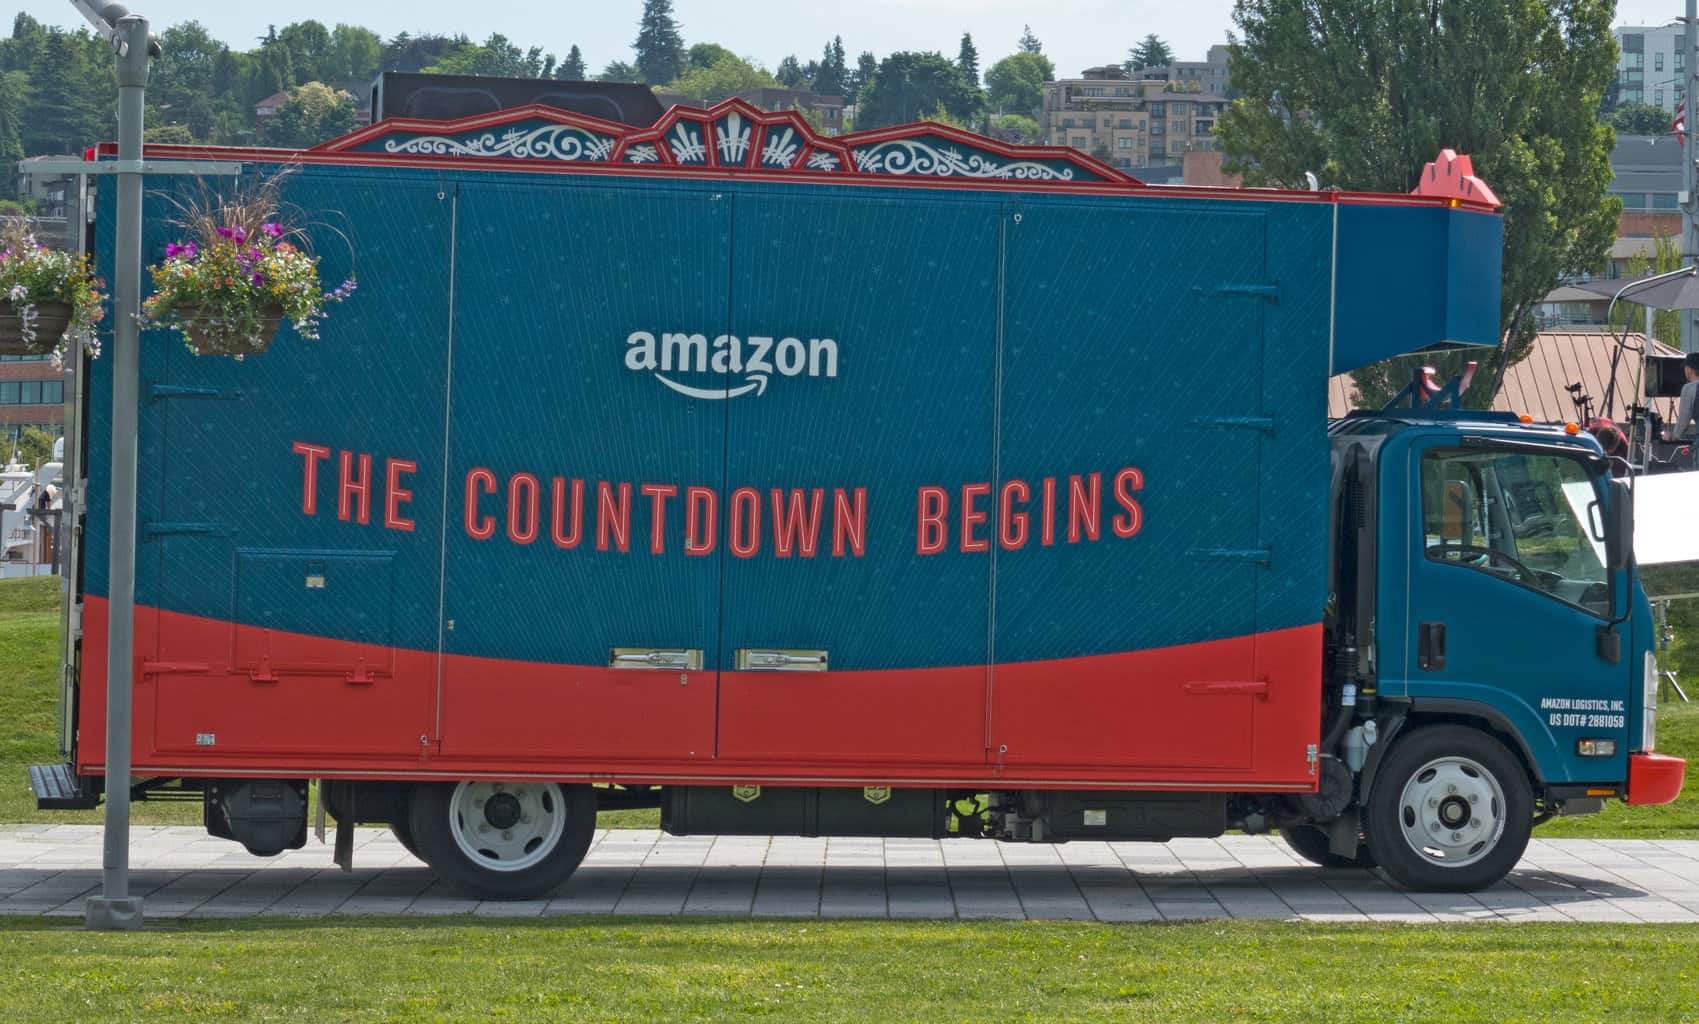 Priming the Pump: Amazon steamrolls its way toward more